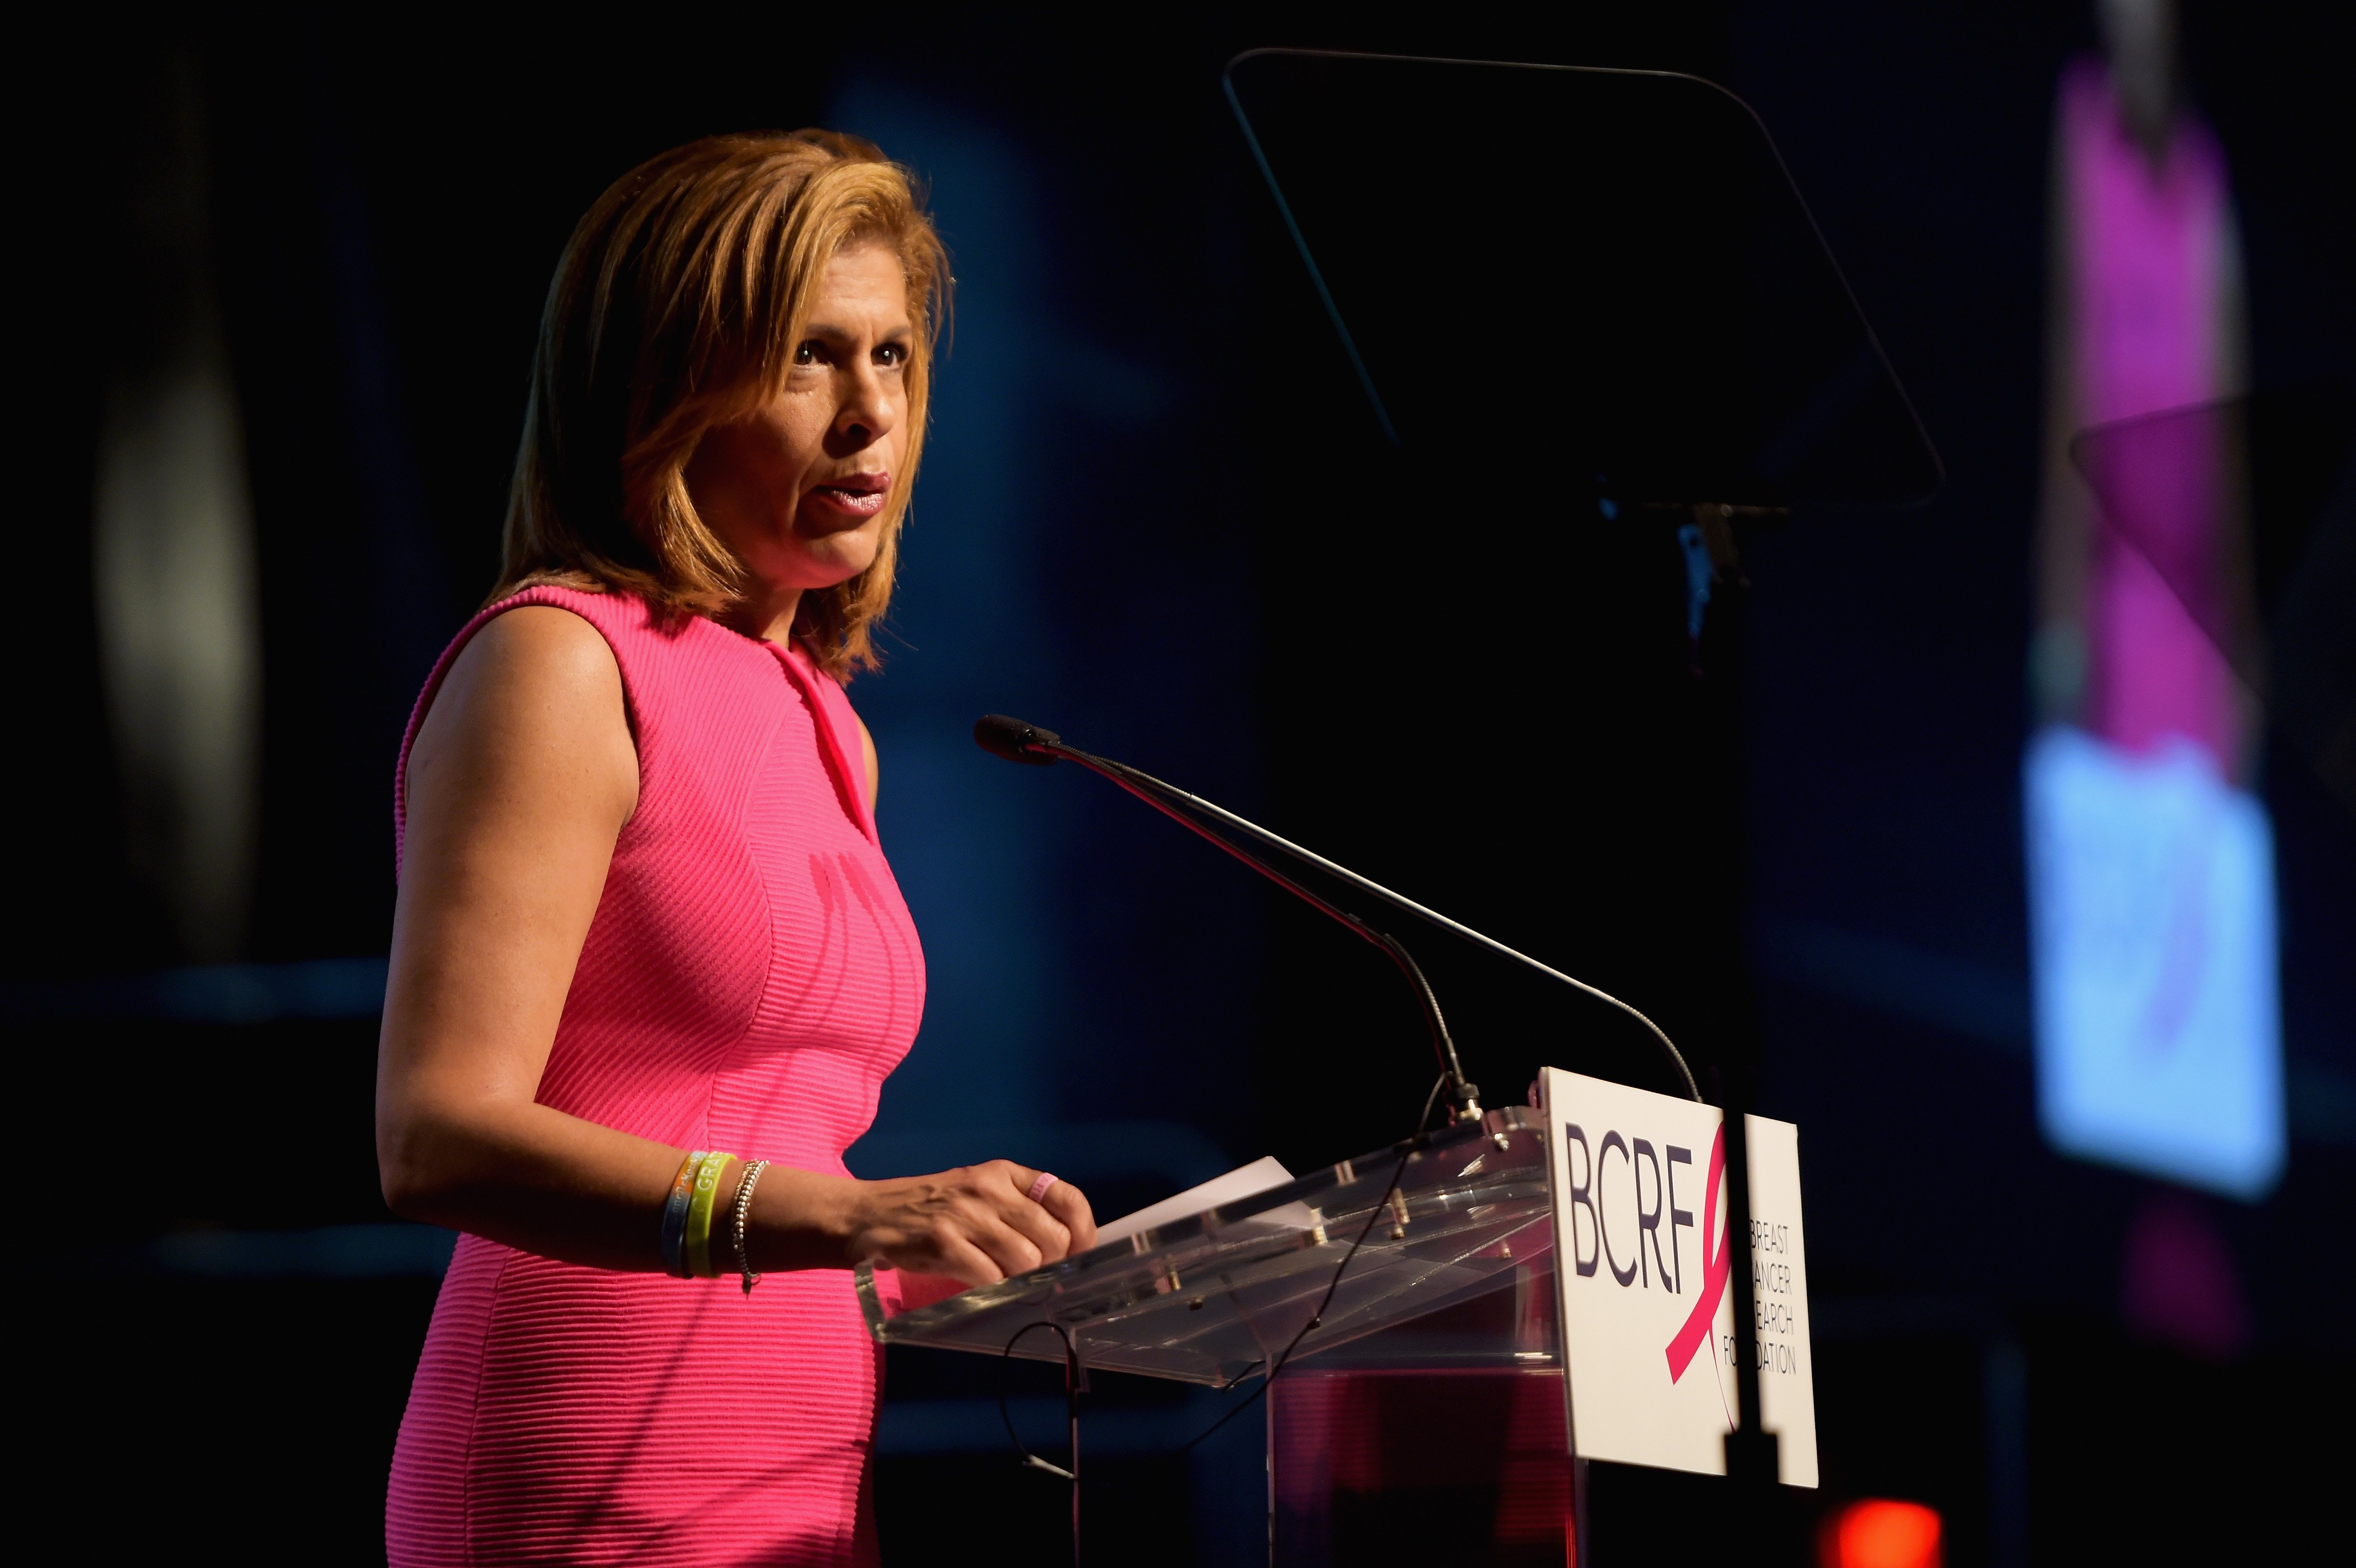 Hoda Kotb speaks onstage at the Breast Cancer Research Foundation New York Symposium and Awards Luncheon at New York Hilton on October 19, 2017 in New York City   Photo: Getty Images